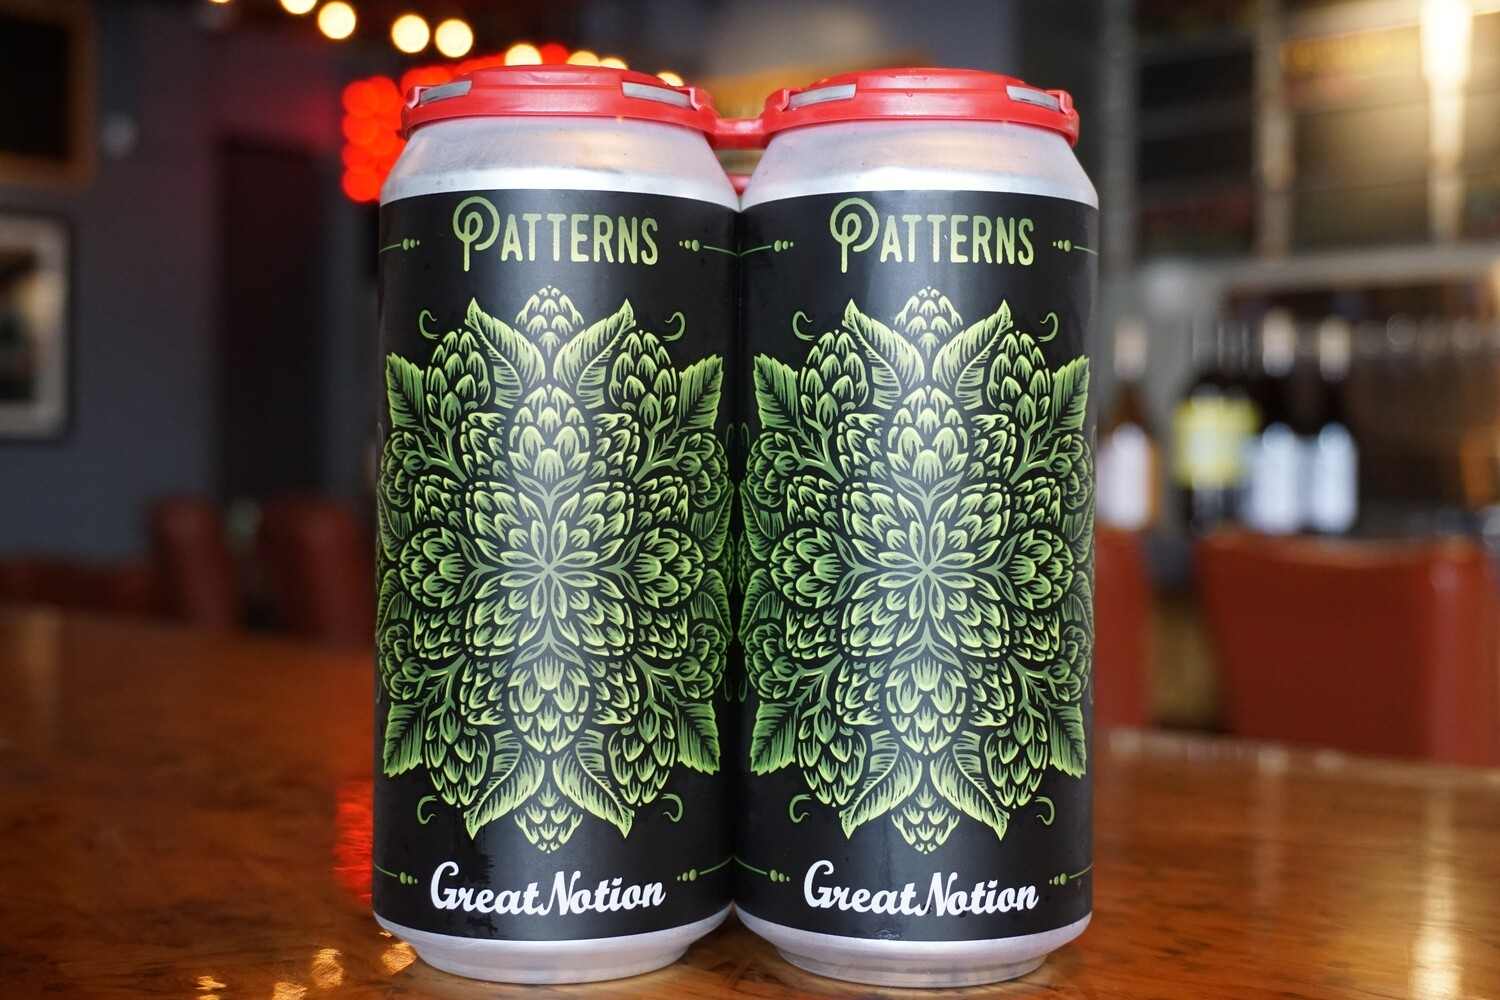 Great Notion Patterns